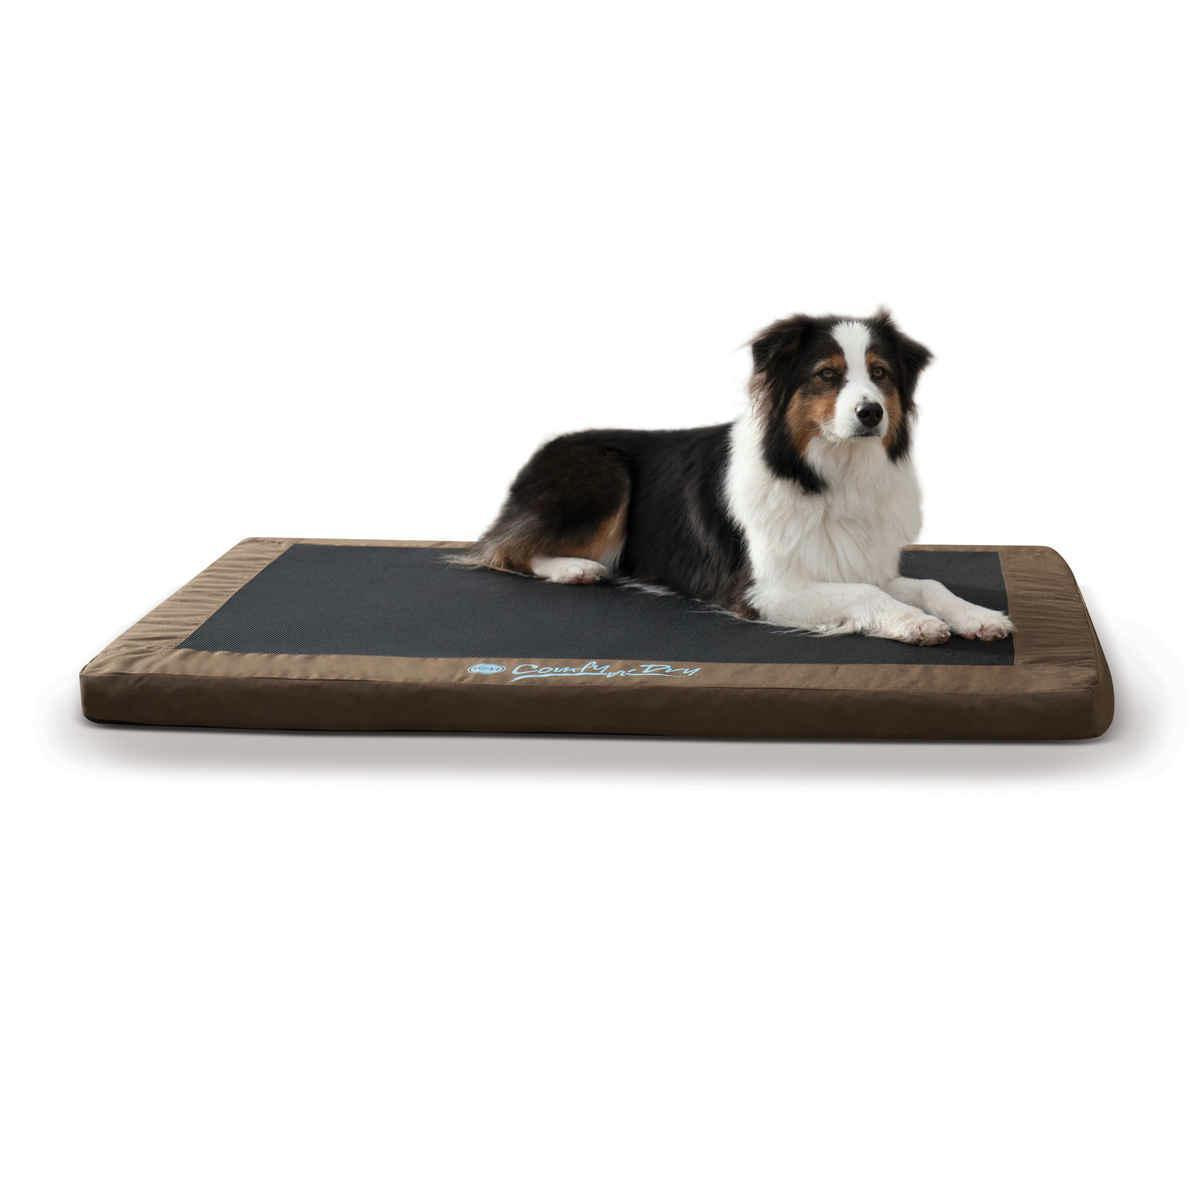 """K&h Pet Products Comfy N' Dry Indoor-outdoor Pet Bed Large Chocolate 36"""" X 48"""" X 2.5"""" - image 1 of 1"""